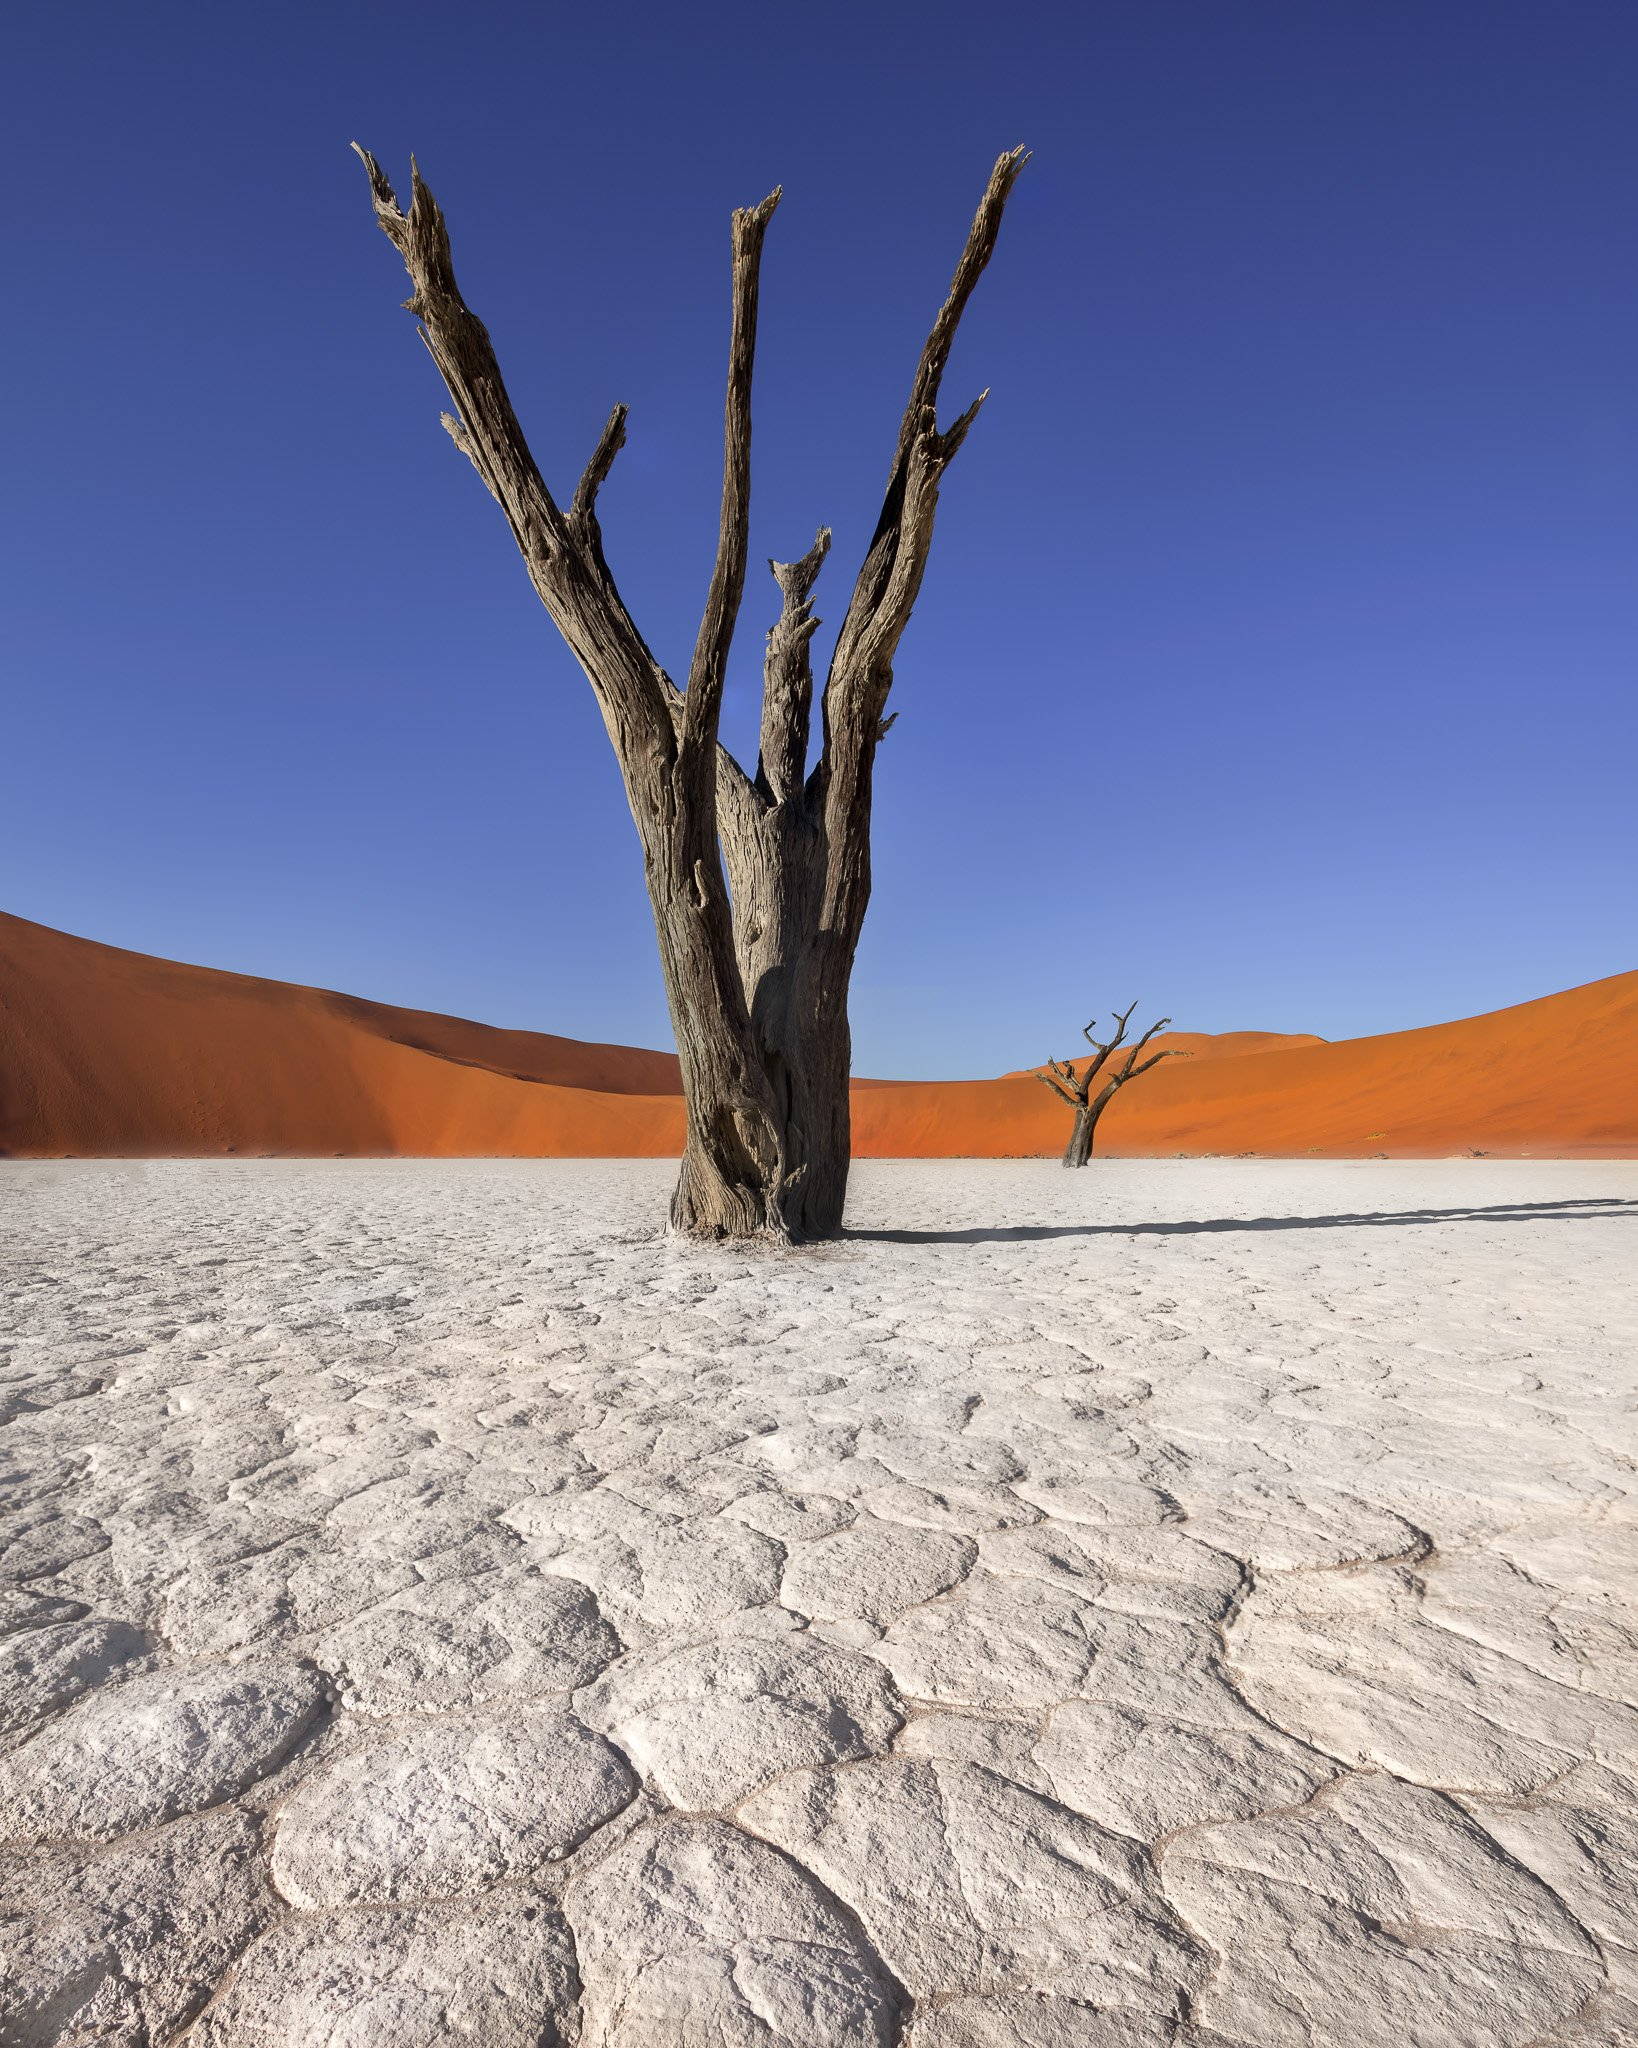 acacia, Africa, african, arid, beautiful, blue, branch, camelthorn, clay, day, daylight, dead, deadvlei, desert, drought, dry, dune, famous, forest, hot, lake, landmark, landscape, morning, namib, namibia, namibian, national, nature, naukluft, orange, out, anshar